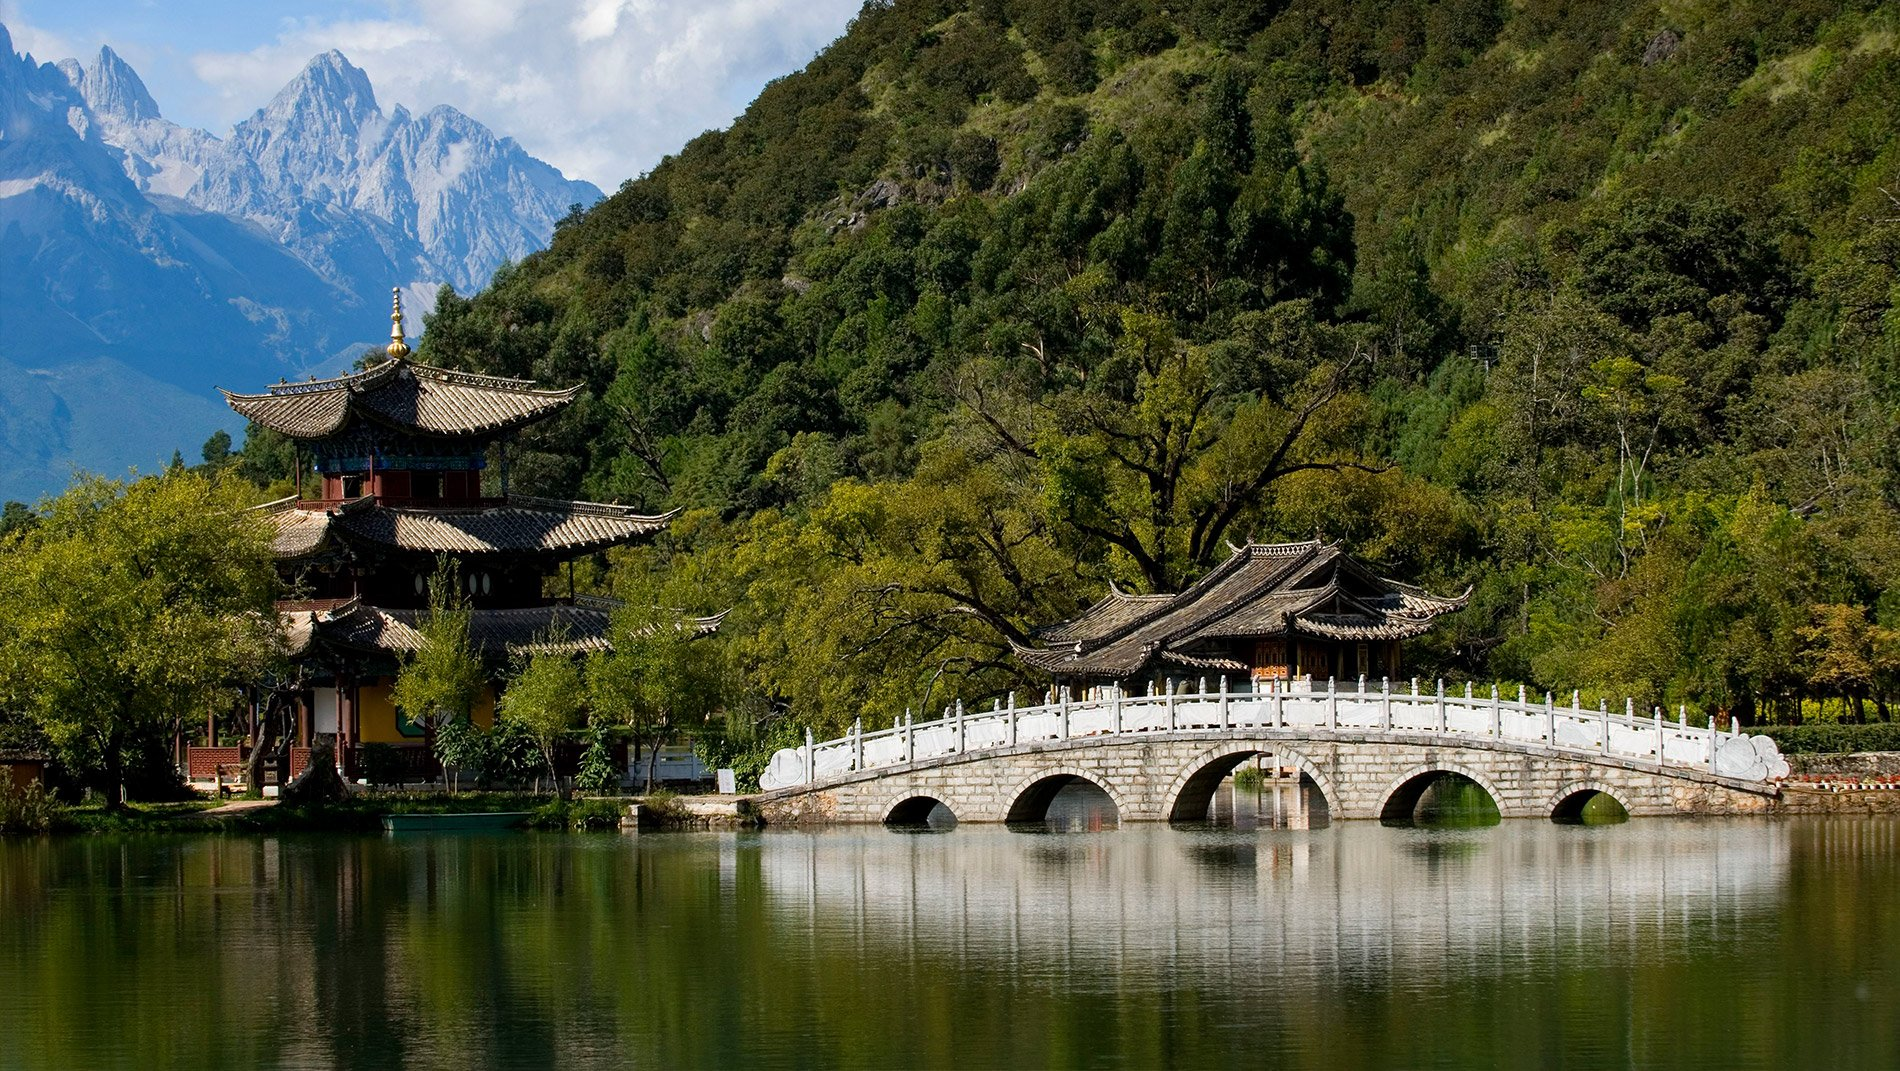 Jade Dragon Snow Mountain~The melting glacier overlooking Lijiang is the source of its freshwater and also a symbol of the challenging terrain of the Tea and Horse trade route on which Lijiang traditionally relied for its income.